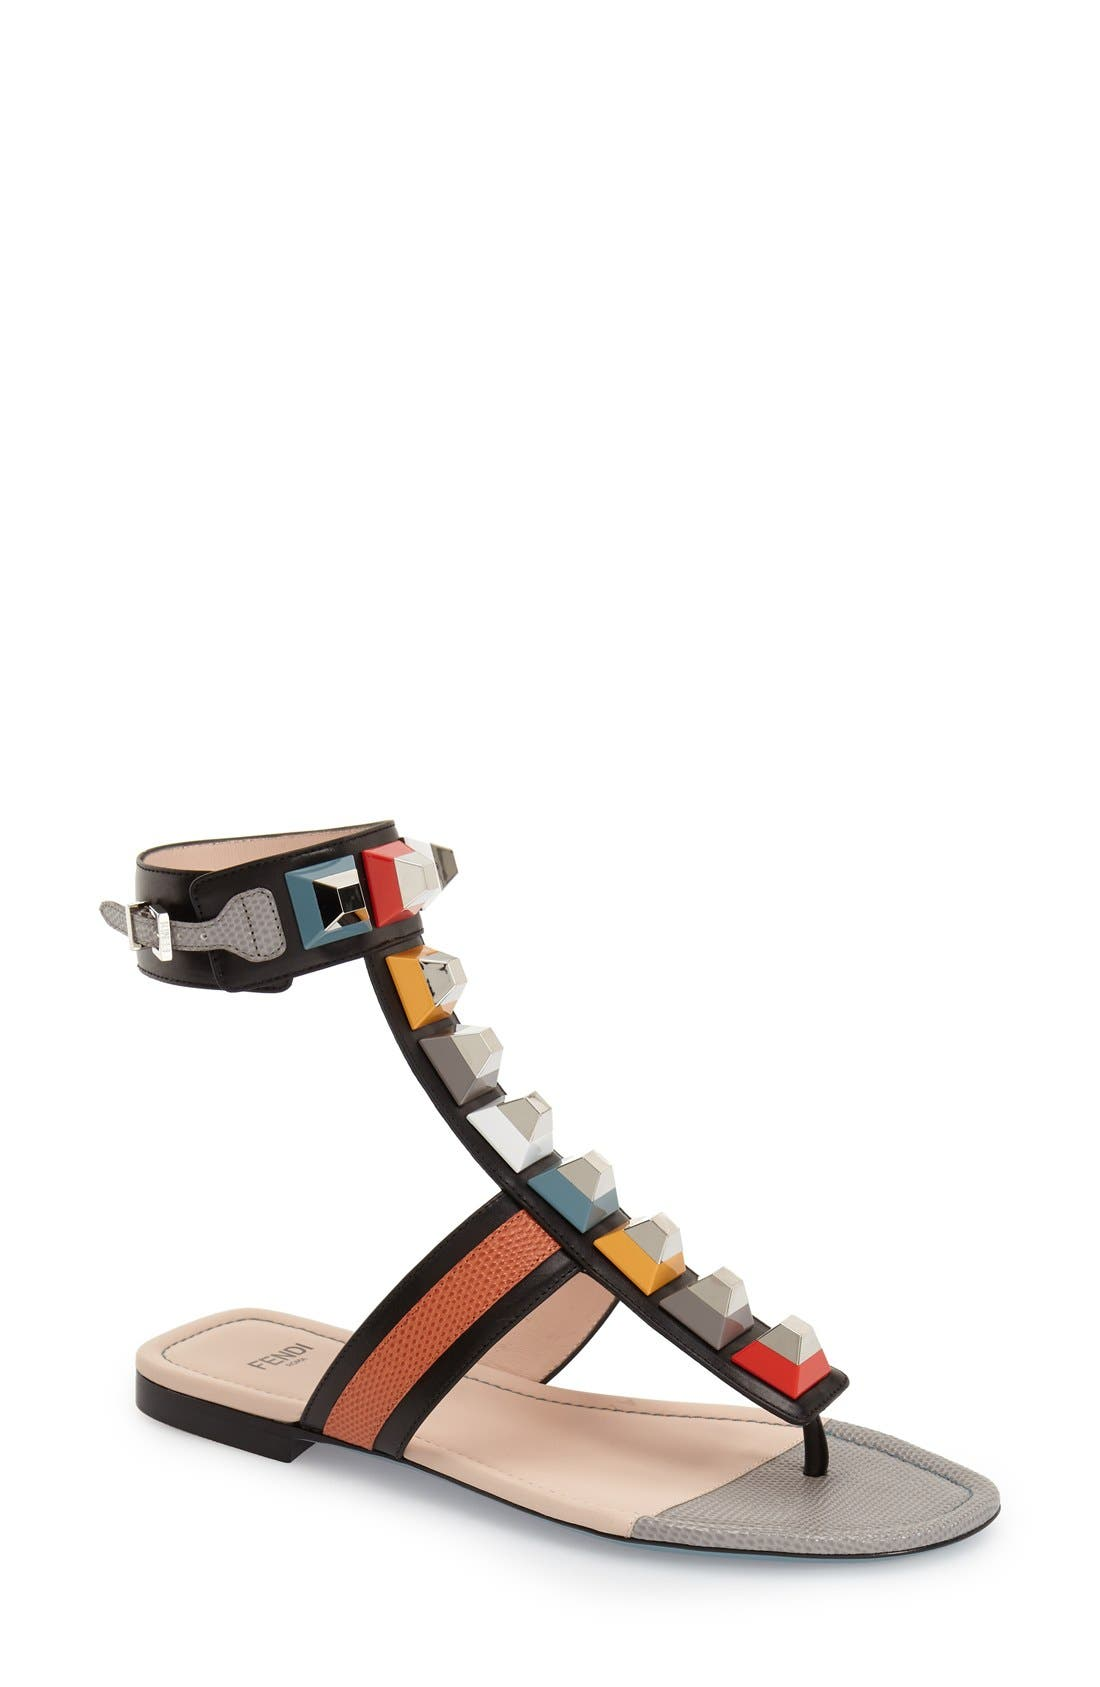 Main Image - Fendi 'Rainbow' Studded Colorblock Gladiator Sandal (Women)